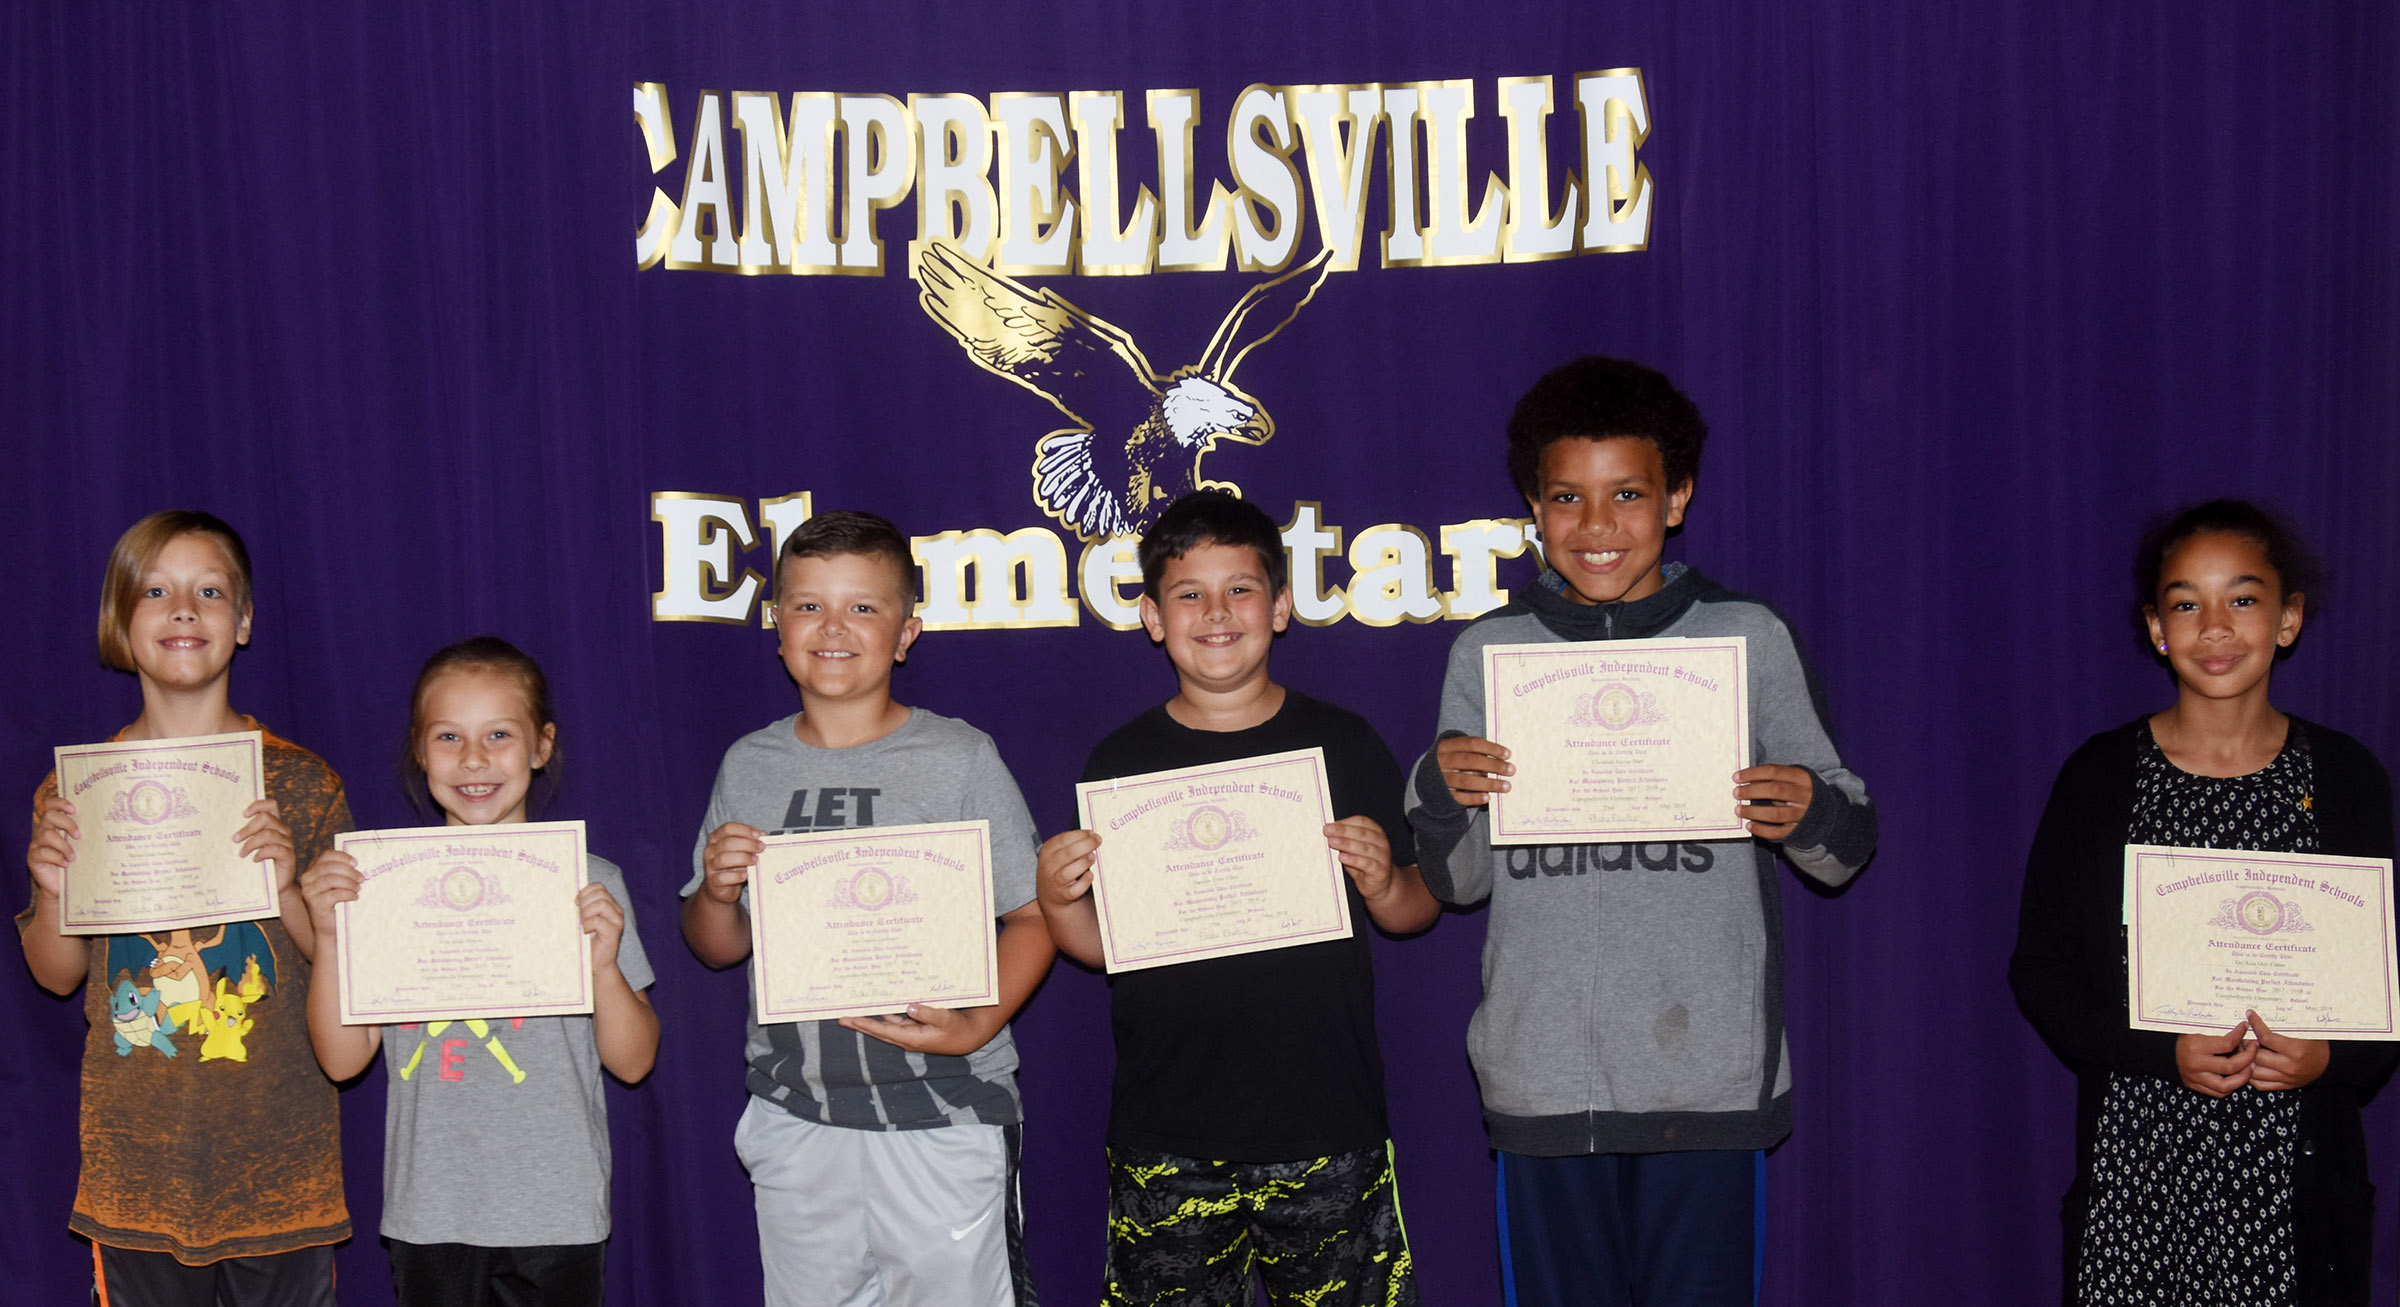 CES perfect attendance award winners for the 2017-2018 school year are, from left, fourth-grader Izak Burress, first-grader Kira Dotson, third-graders Cayton Lawhorn and Damien Clark and fourth-graders Christian Hart and De'Asia Fisher.